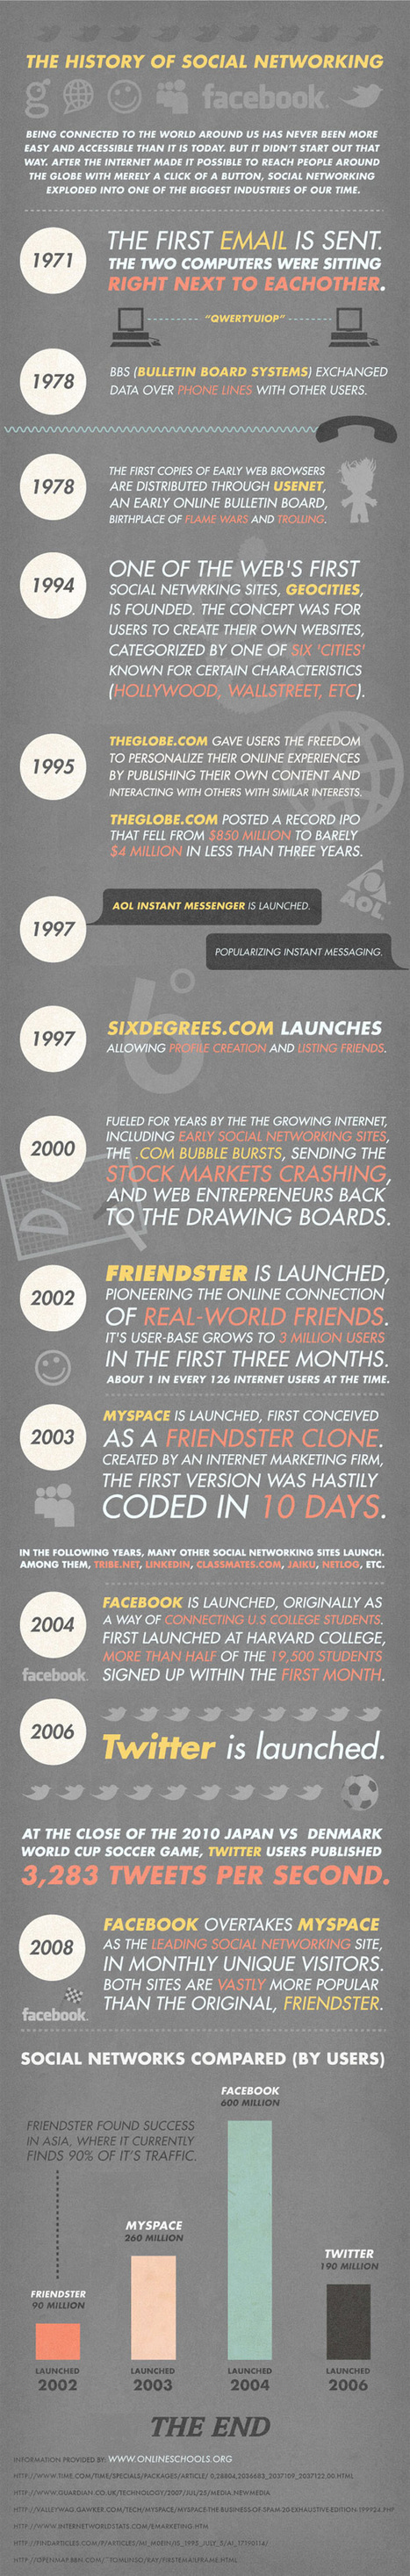 What Is The History of Social Media? [INFOGRAPHIC] | DV8 Digital Marketing Tips and Insight | Scoop.it